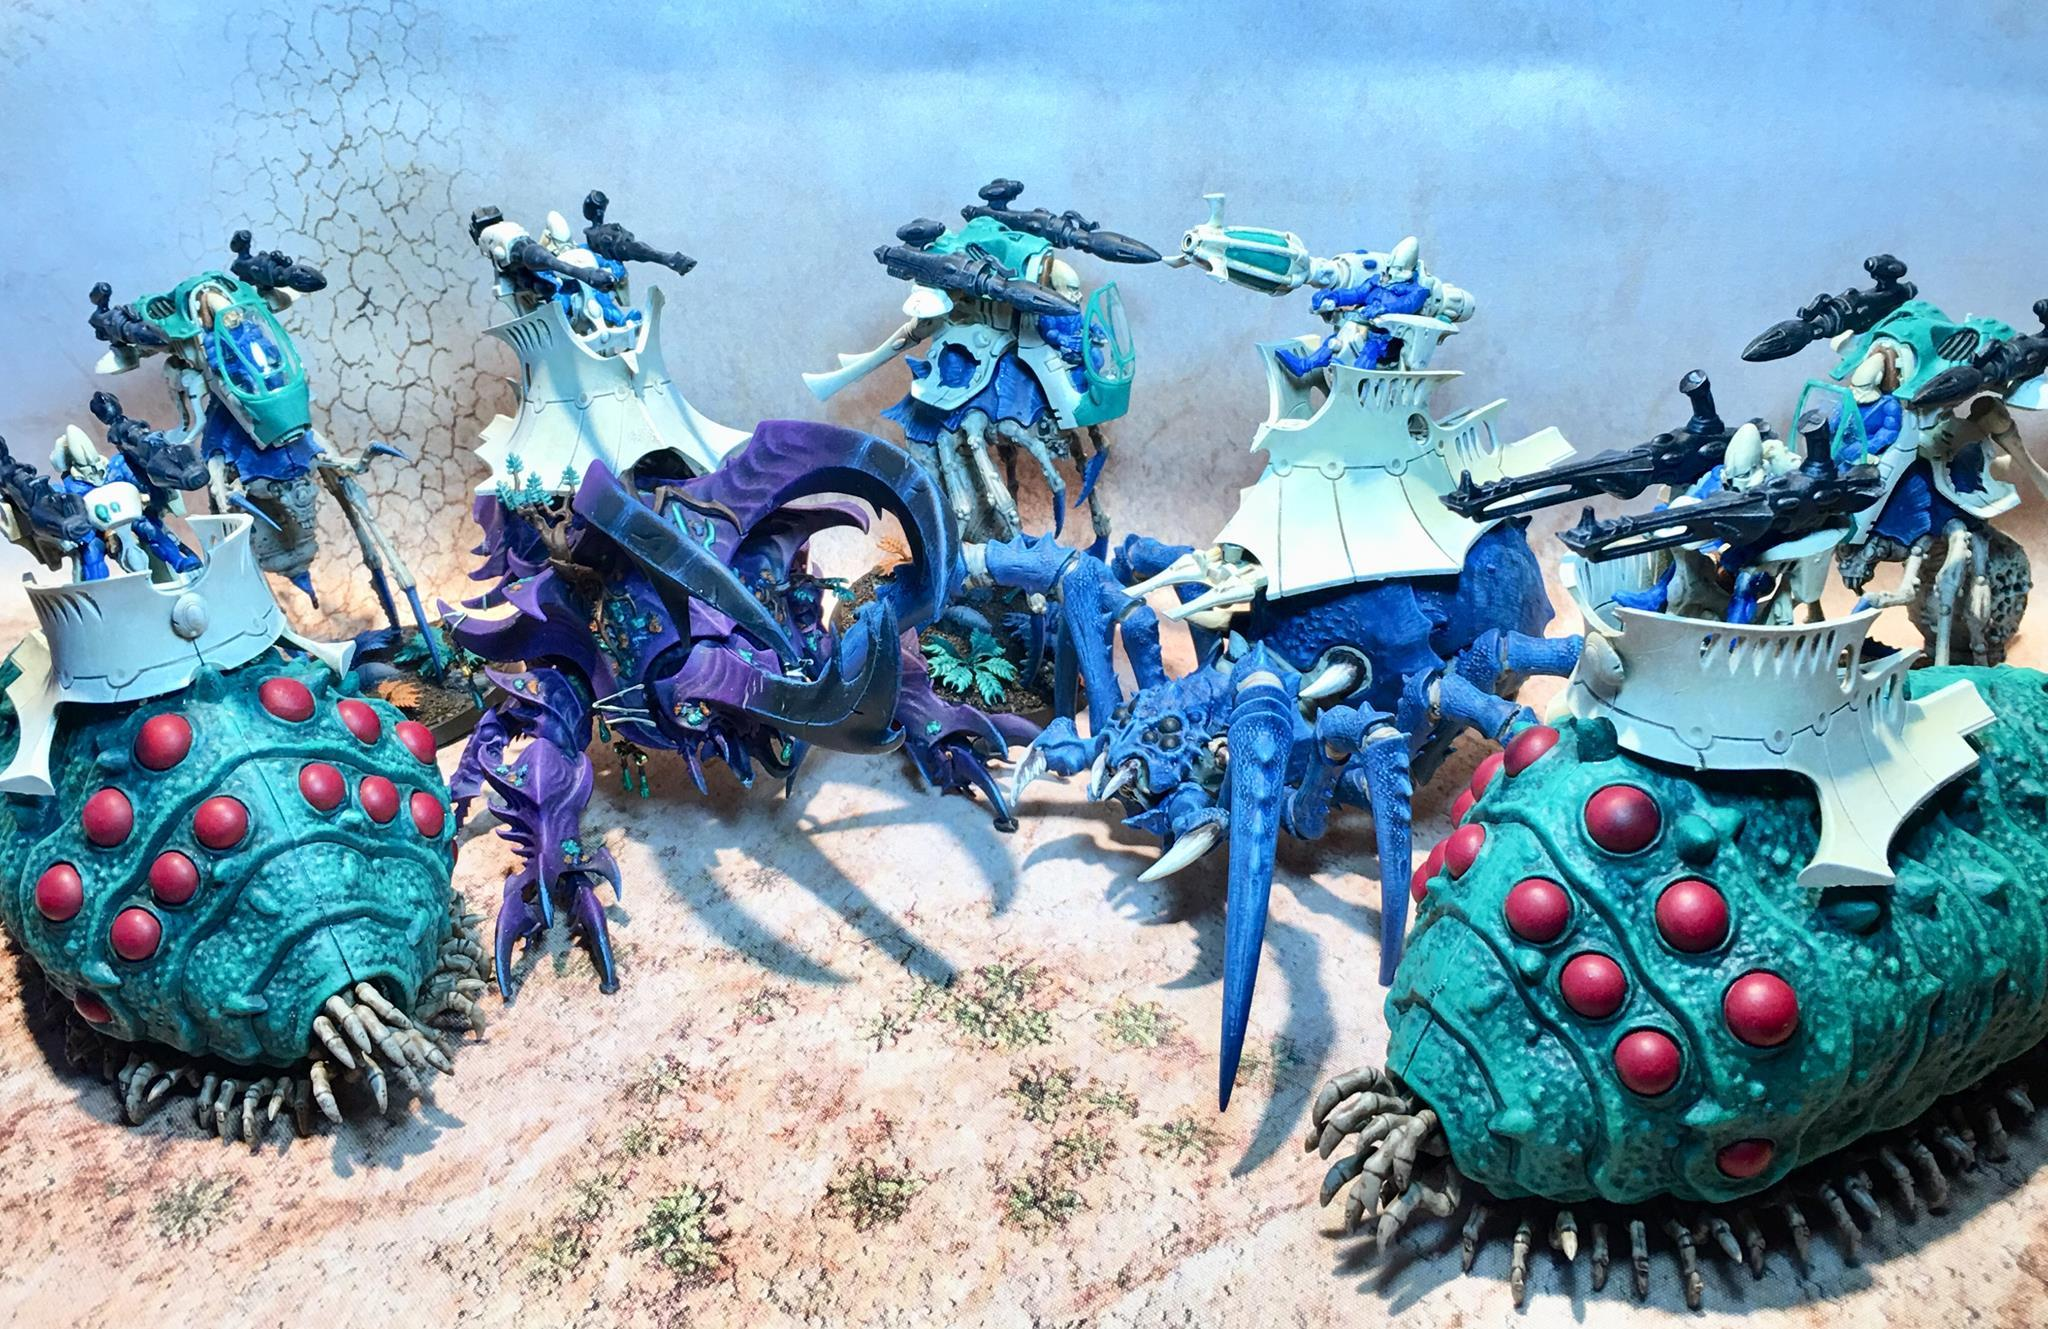 Anime, Bugs, Counts As, Eldar, Exodites, Insects